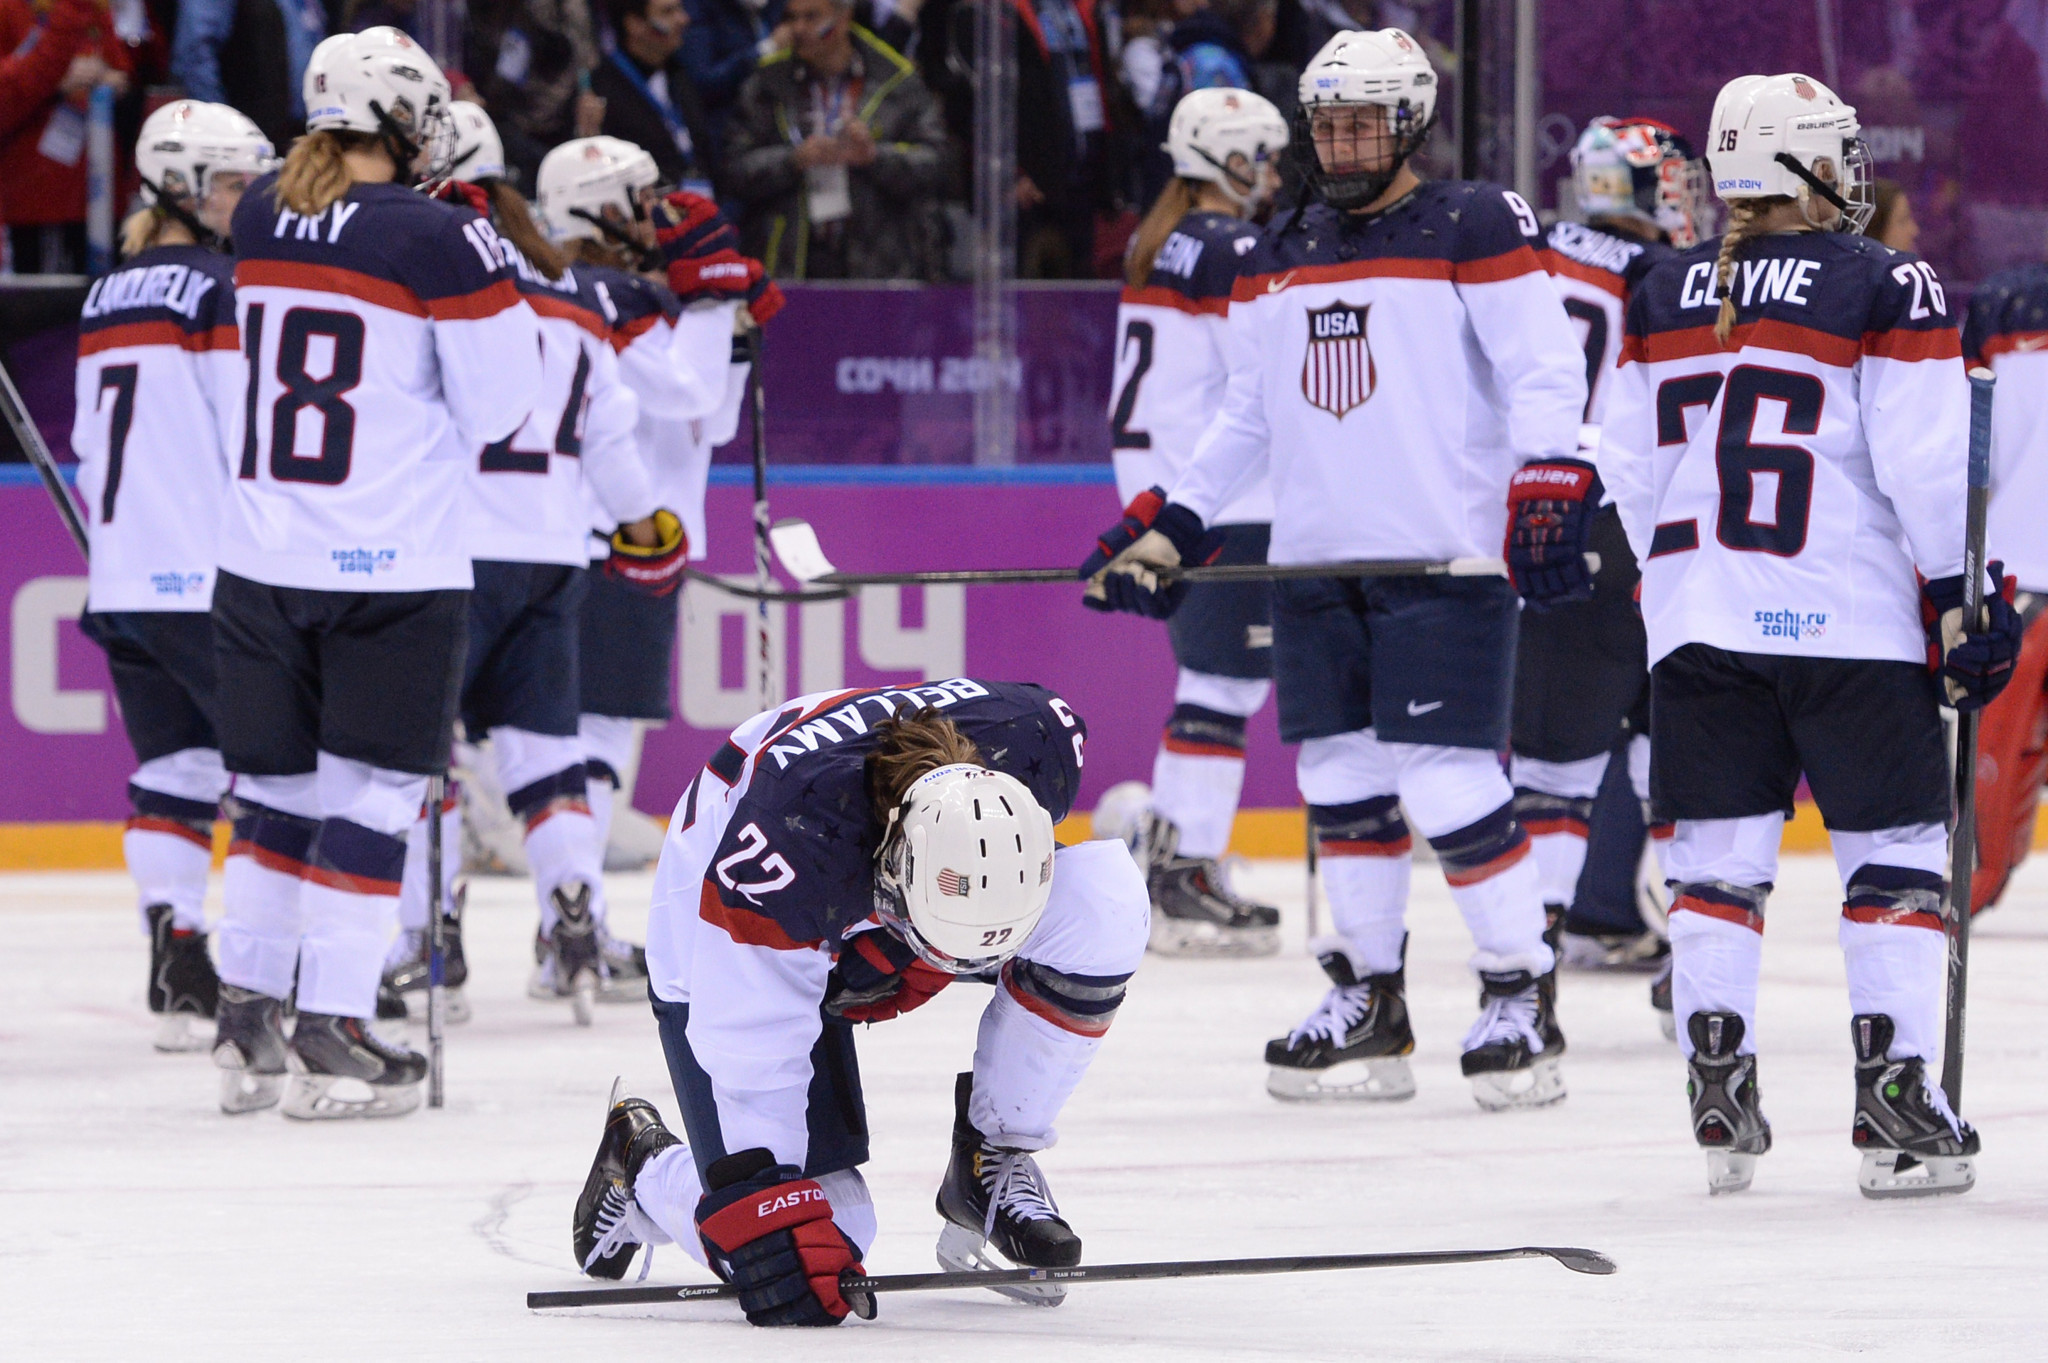 The US will be hoping to go one better than Sochi 2014 where they were beaten in the final ©Getty Images